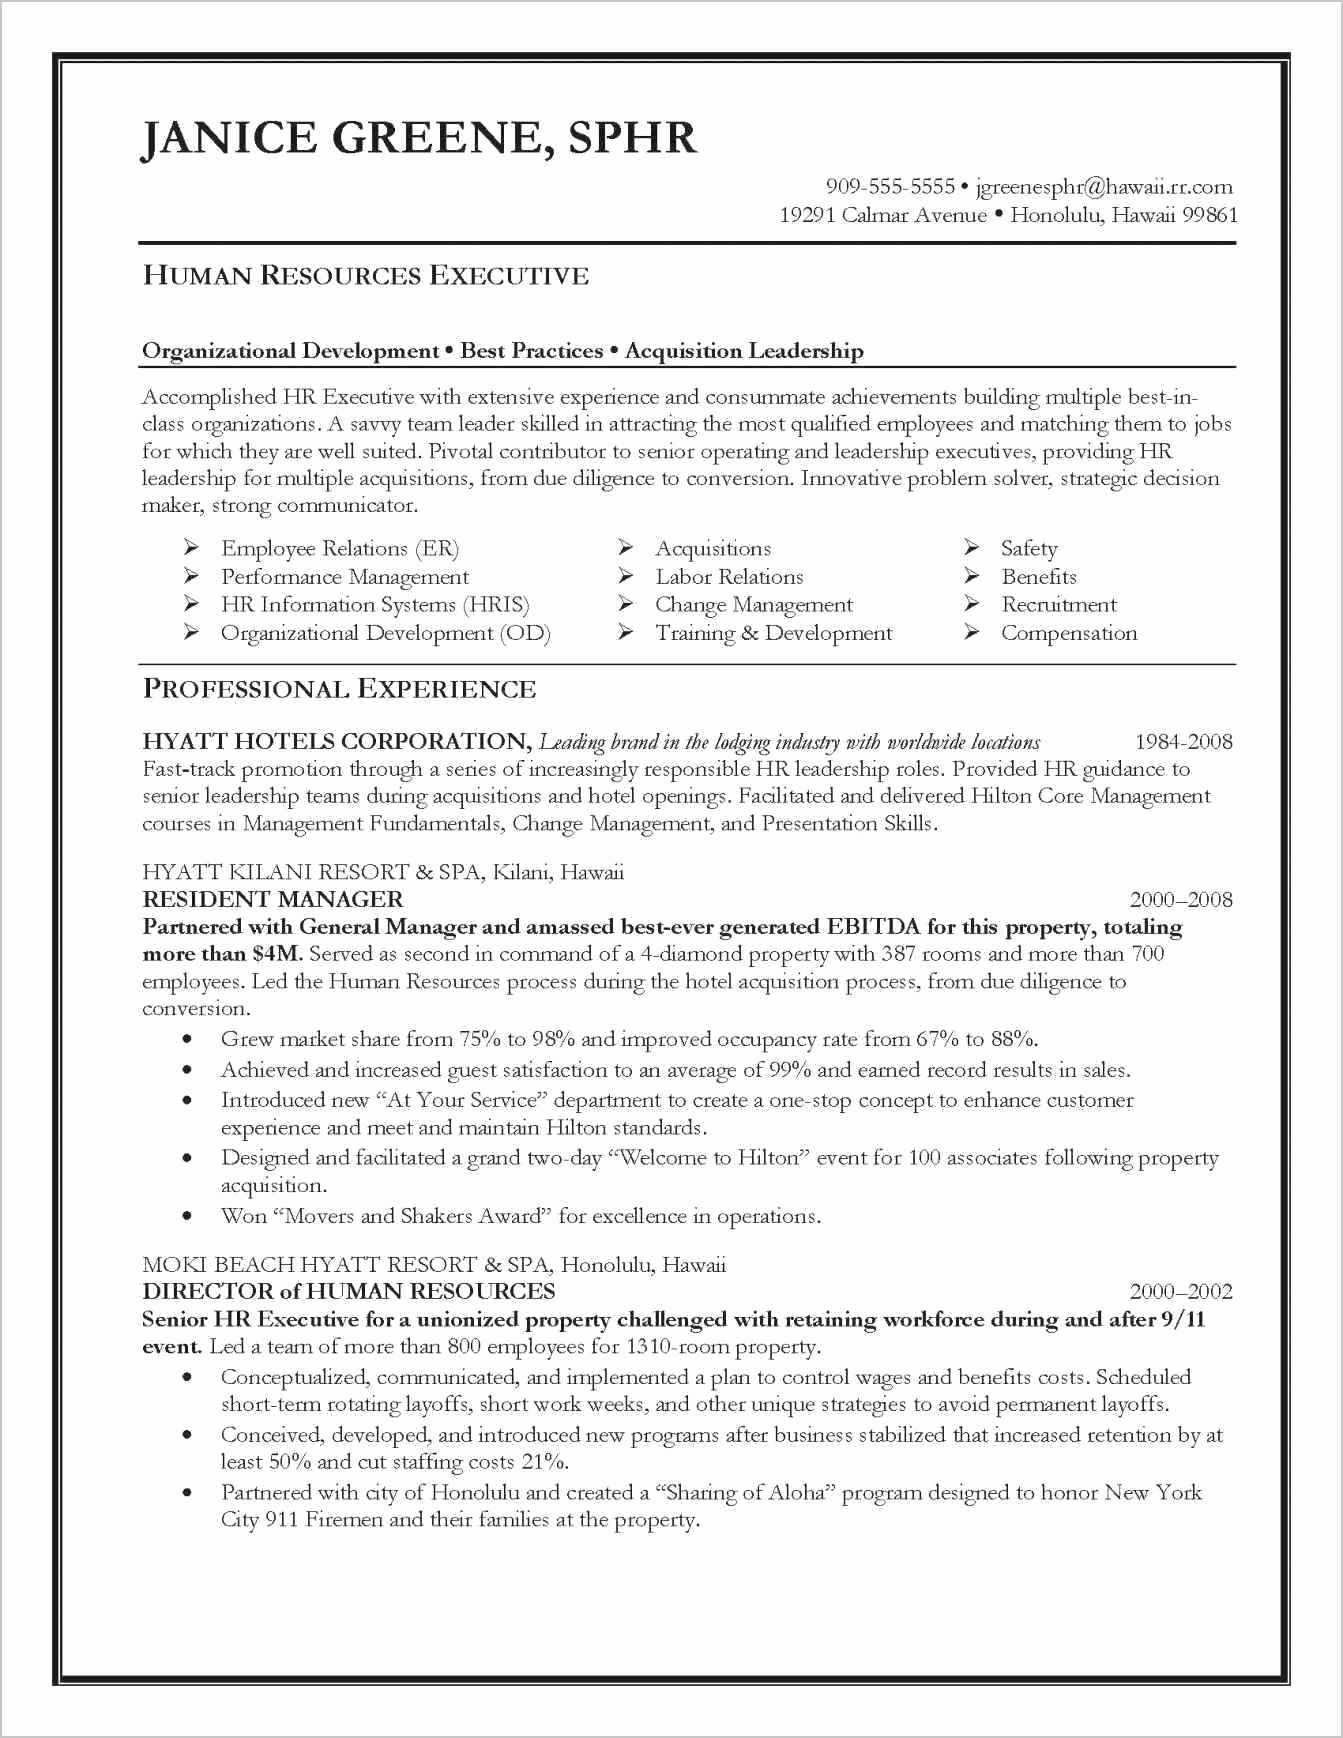 Substitute Teacher Duties for Resume - Elegant Substitute Teacher Job Description for Resume